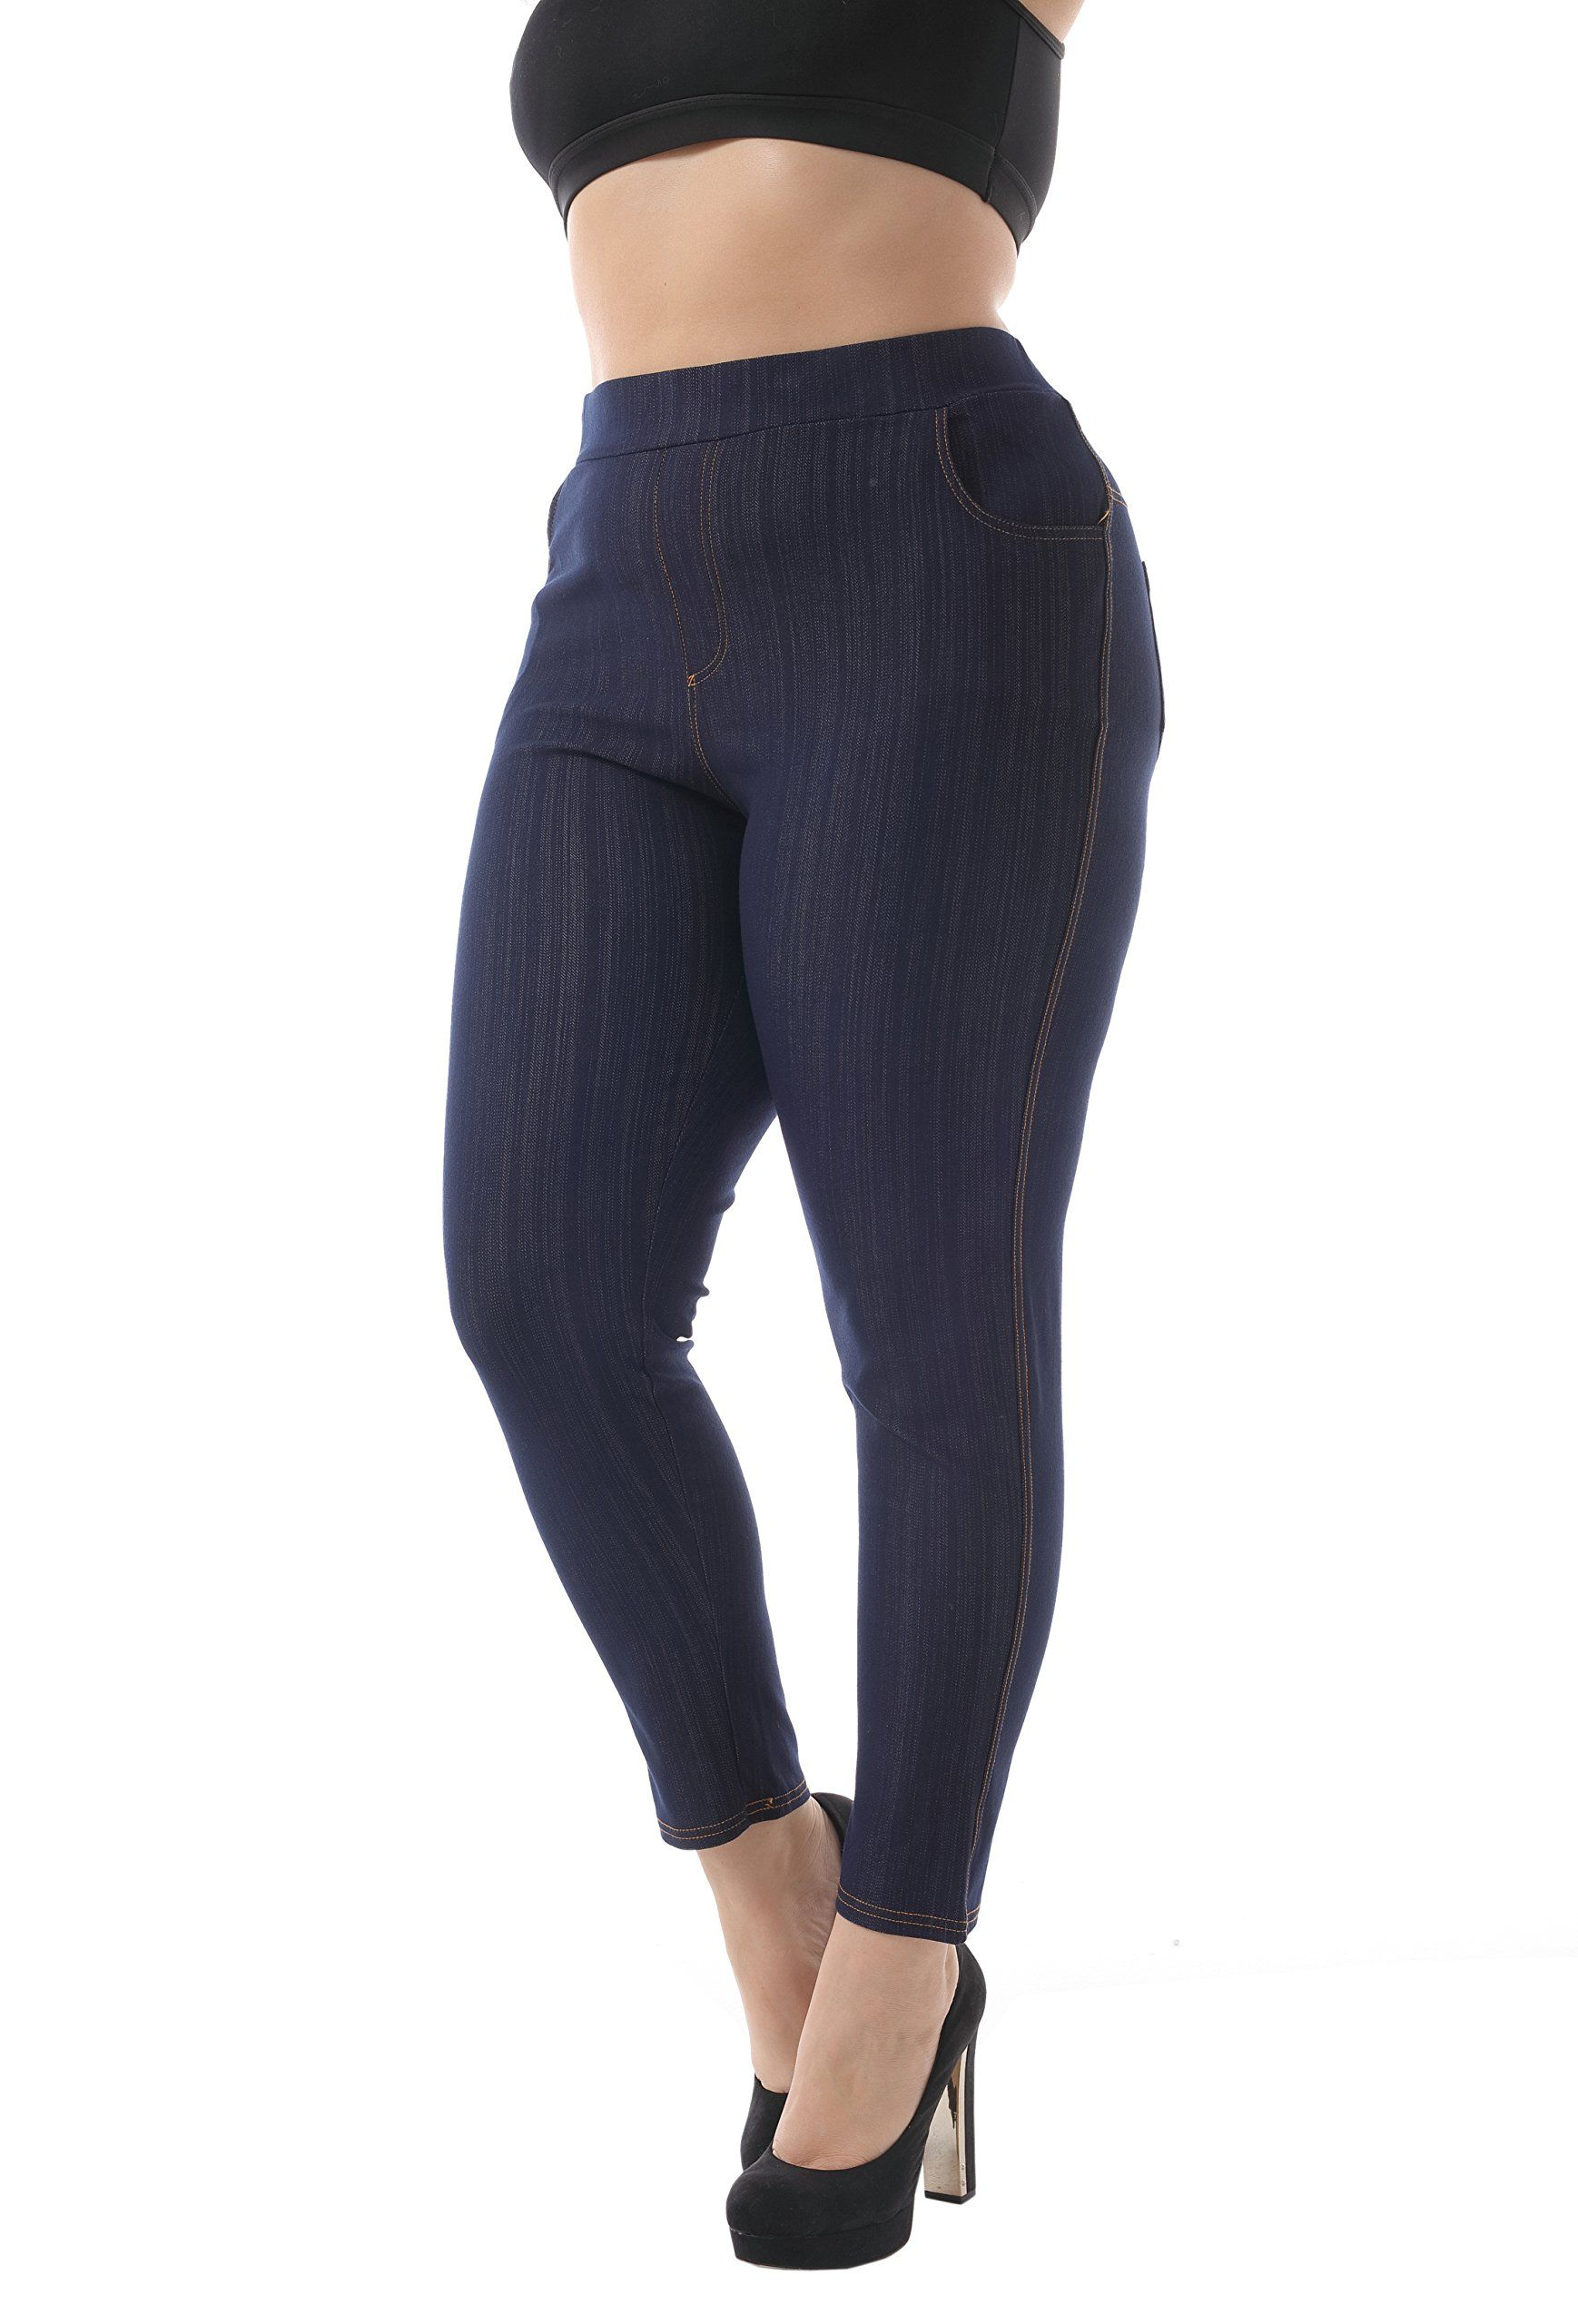 f827b3f585c9c ZERDOCEAN Womens Plus Size 4 Pockets Stetchy Long Jeggings Tights Leggings  Indigo Blue 1X ** Details can be found by clicking on the image.